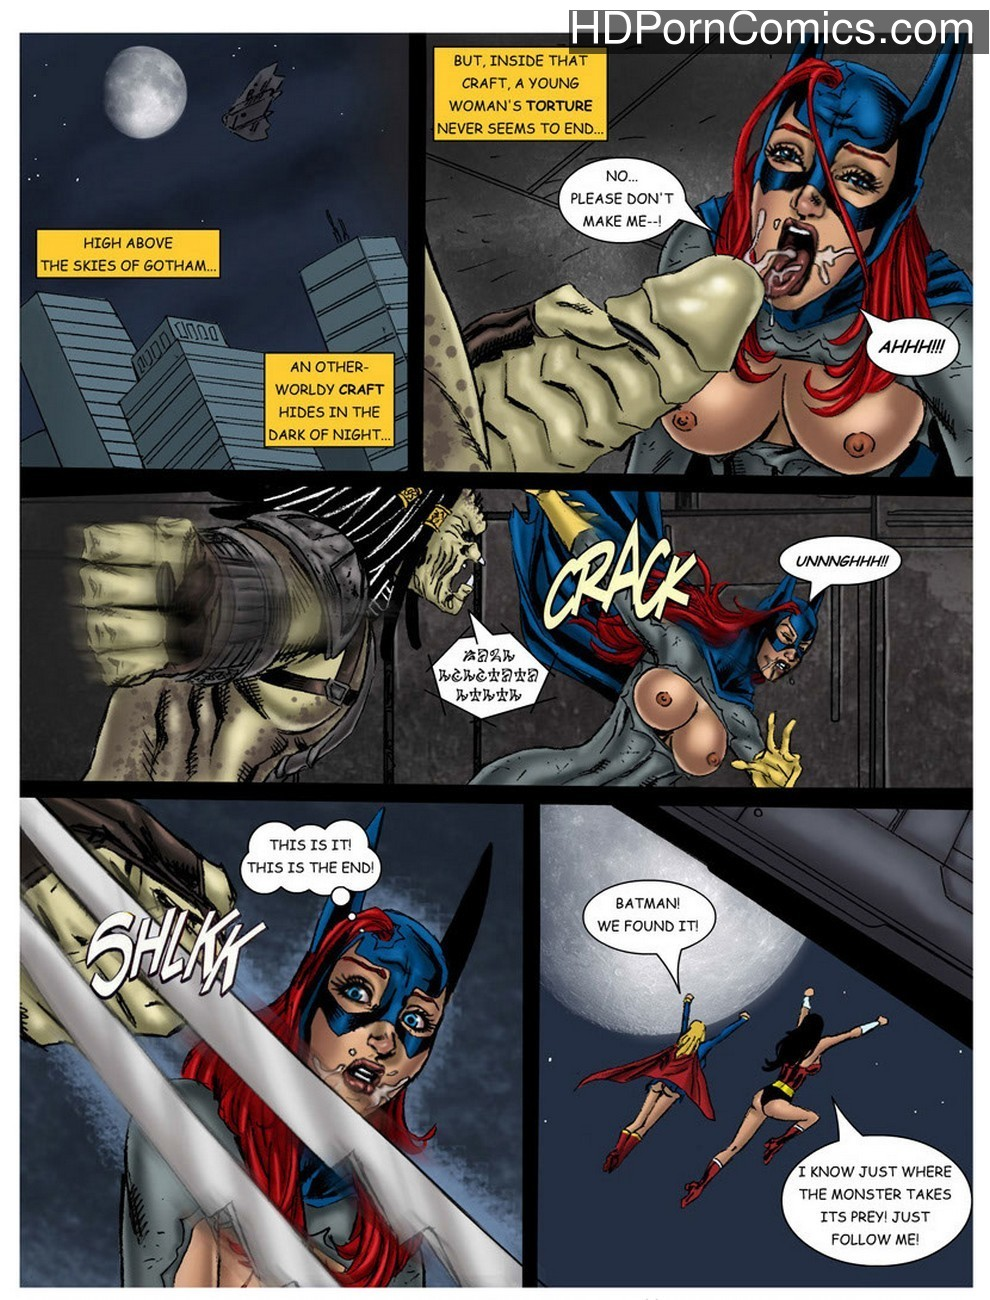 Wonder Woman - In The Clutches Of The Predator 2 21 free sex comic